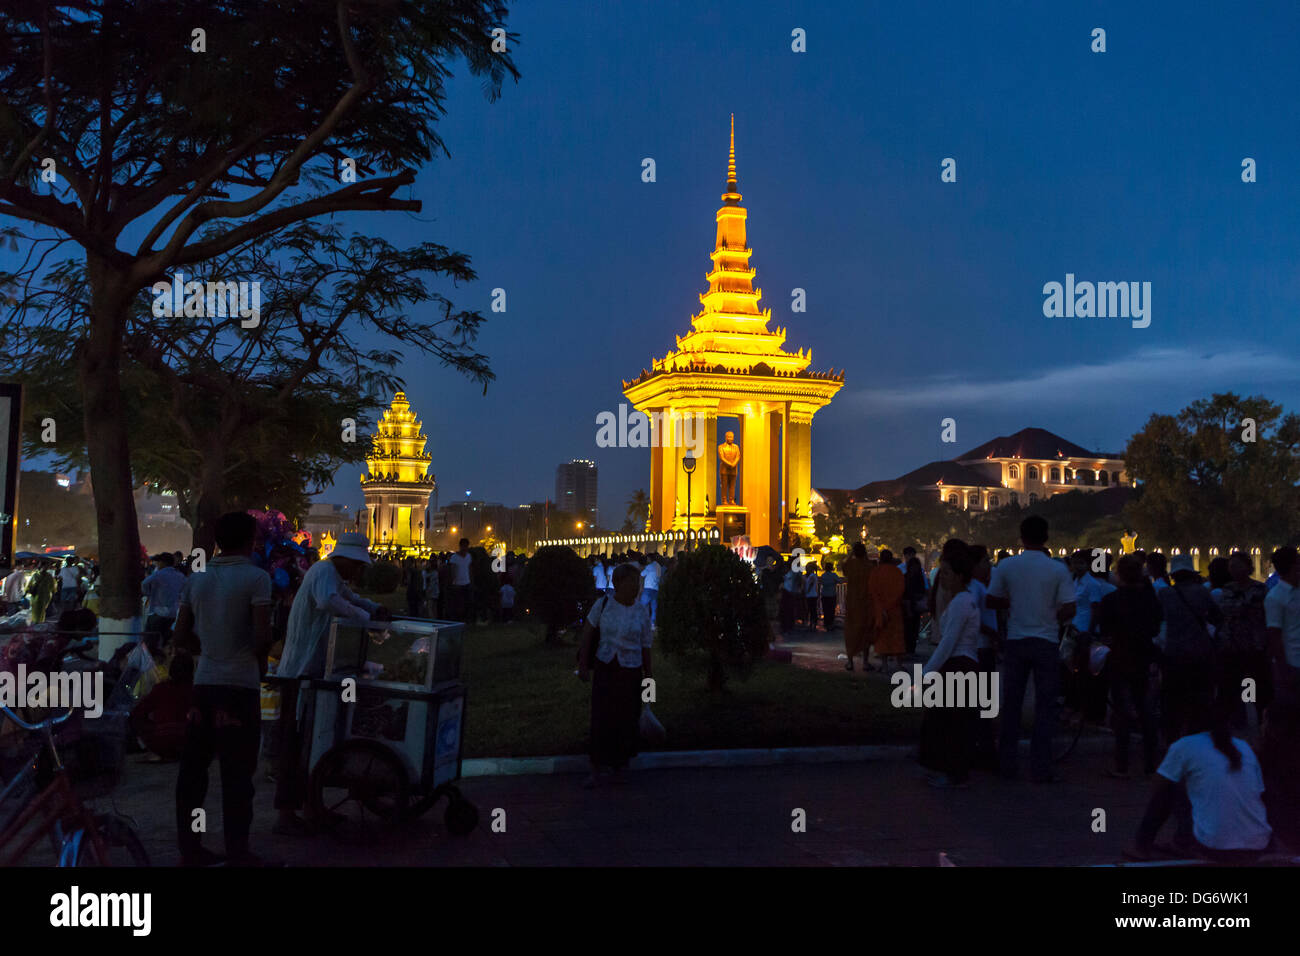 Cambodia marks 1st anniversary of King Father Norodom Sihanouk's death Credit:  Combre Stephane / Alamy Live News Stock Photo